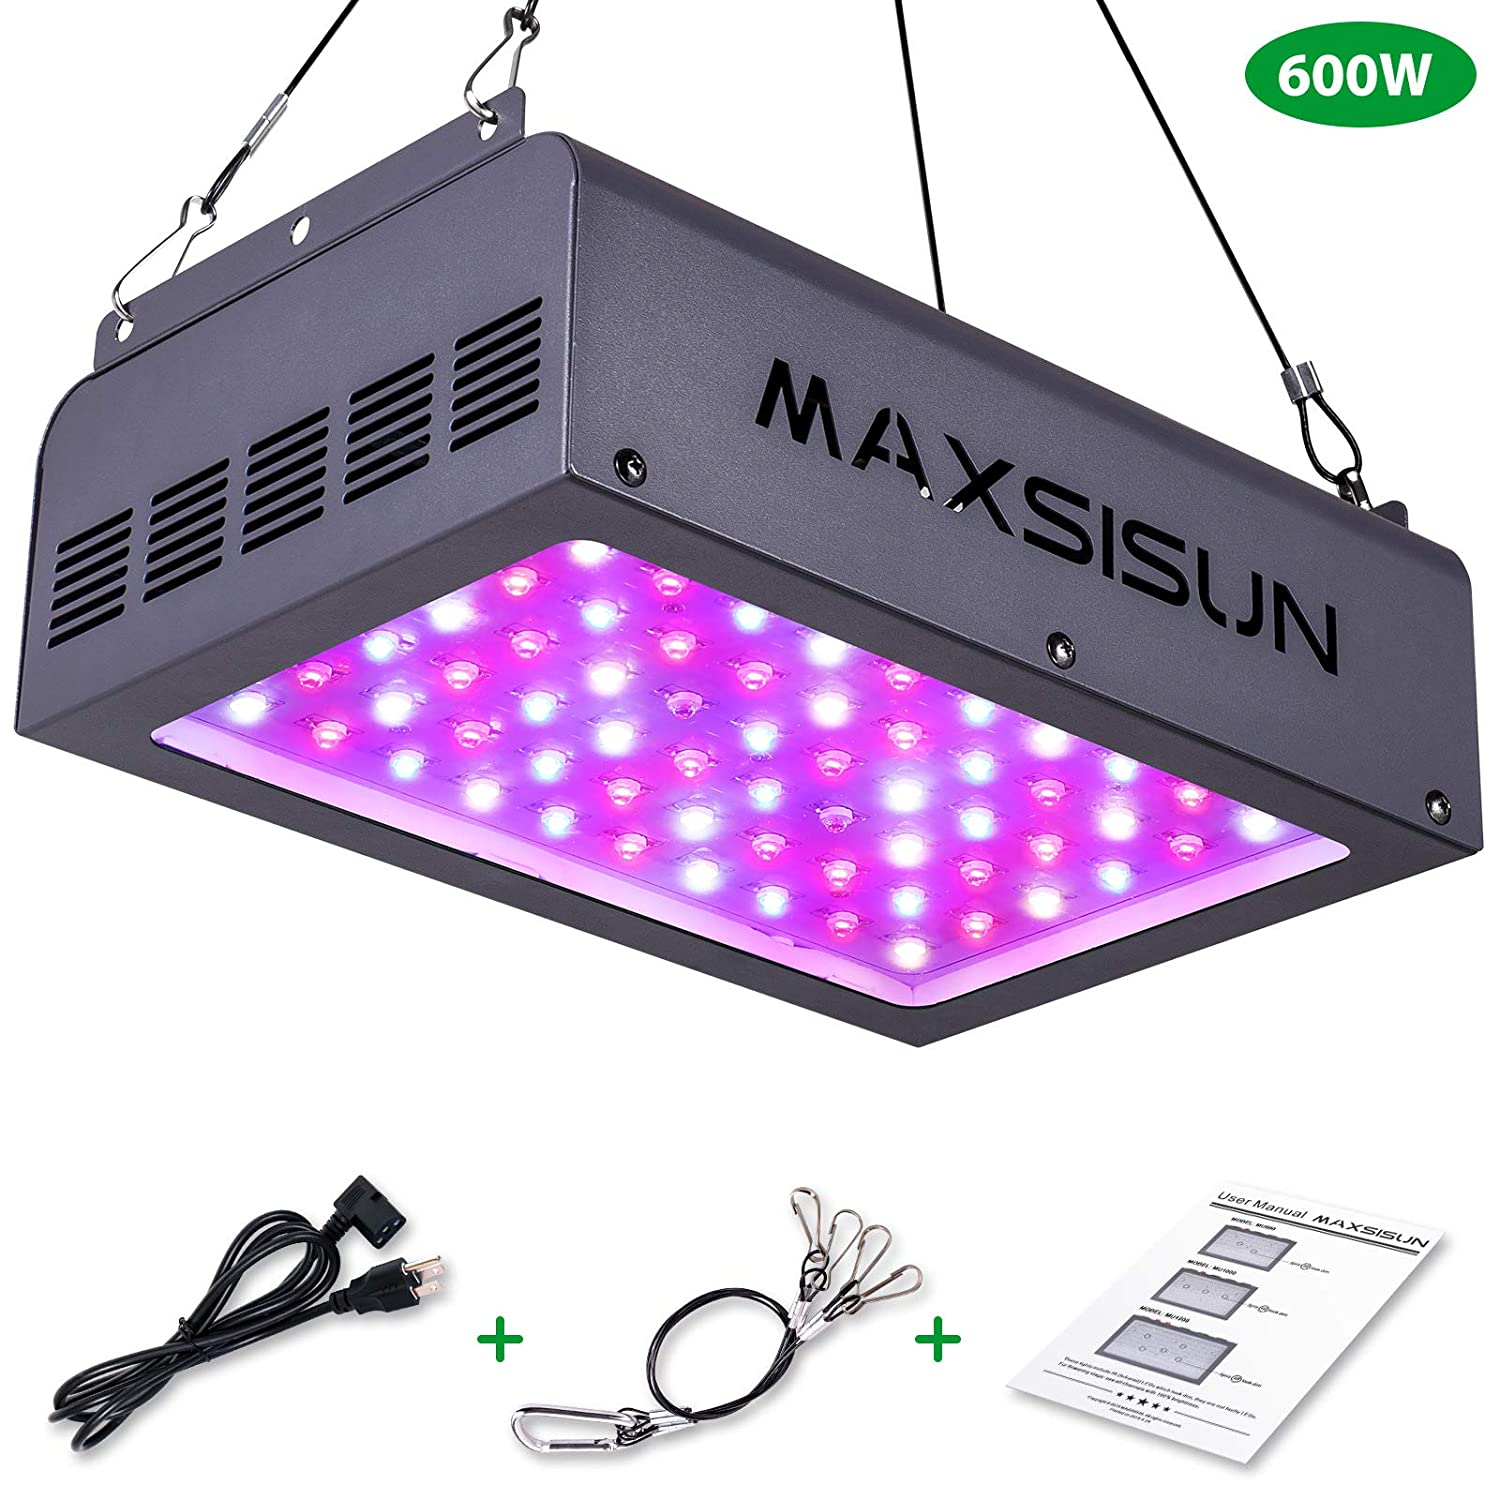 Top 15 Best LED Grow Lights Reviews in 2019 (Growing Marijuana & Weed) 7